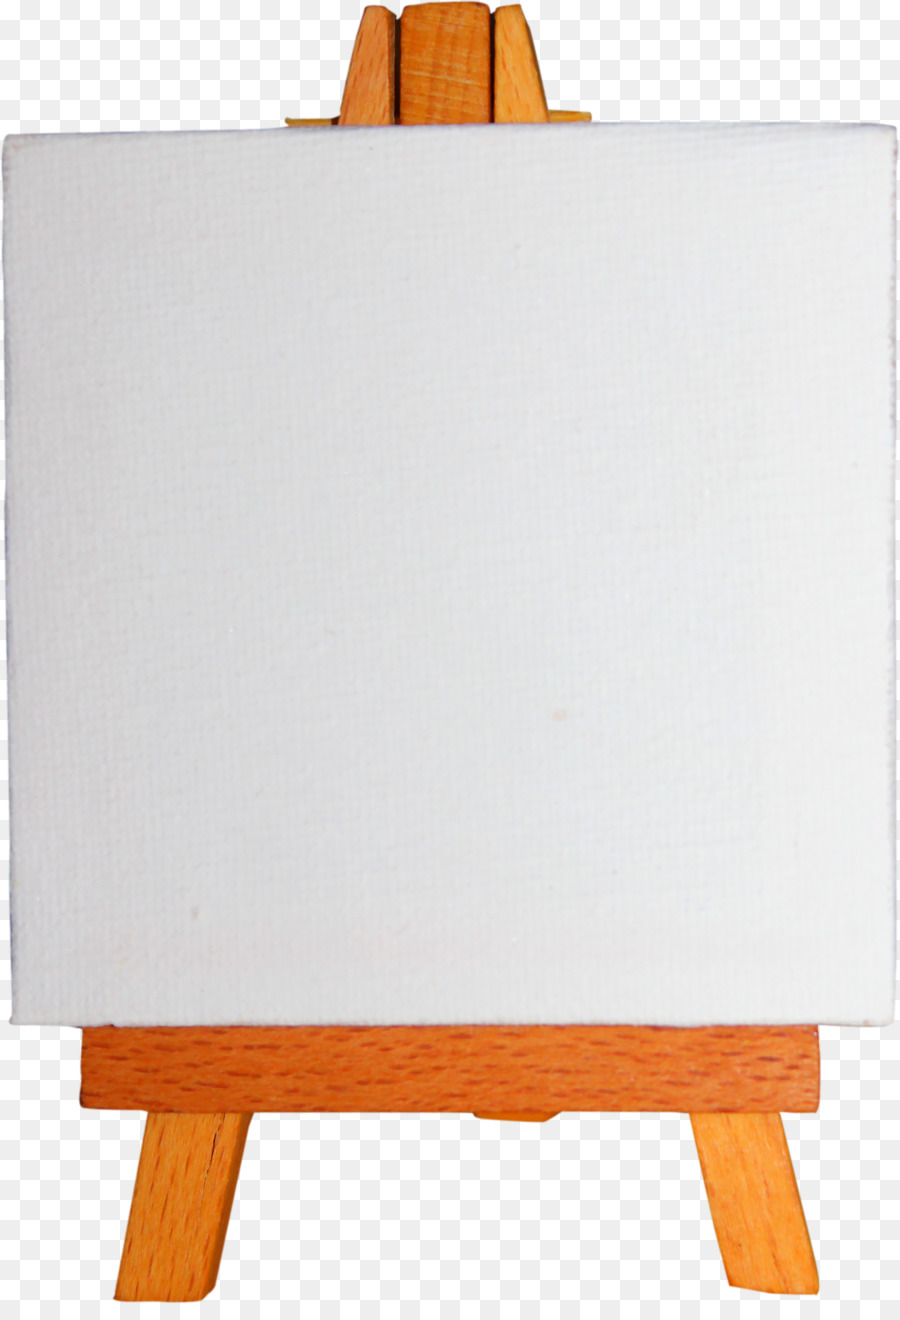 Wood Board png download.